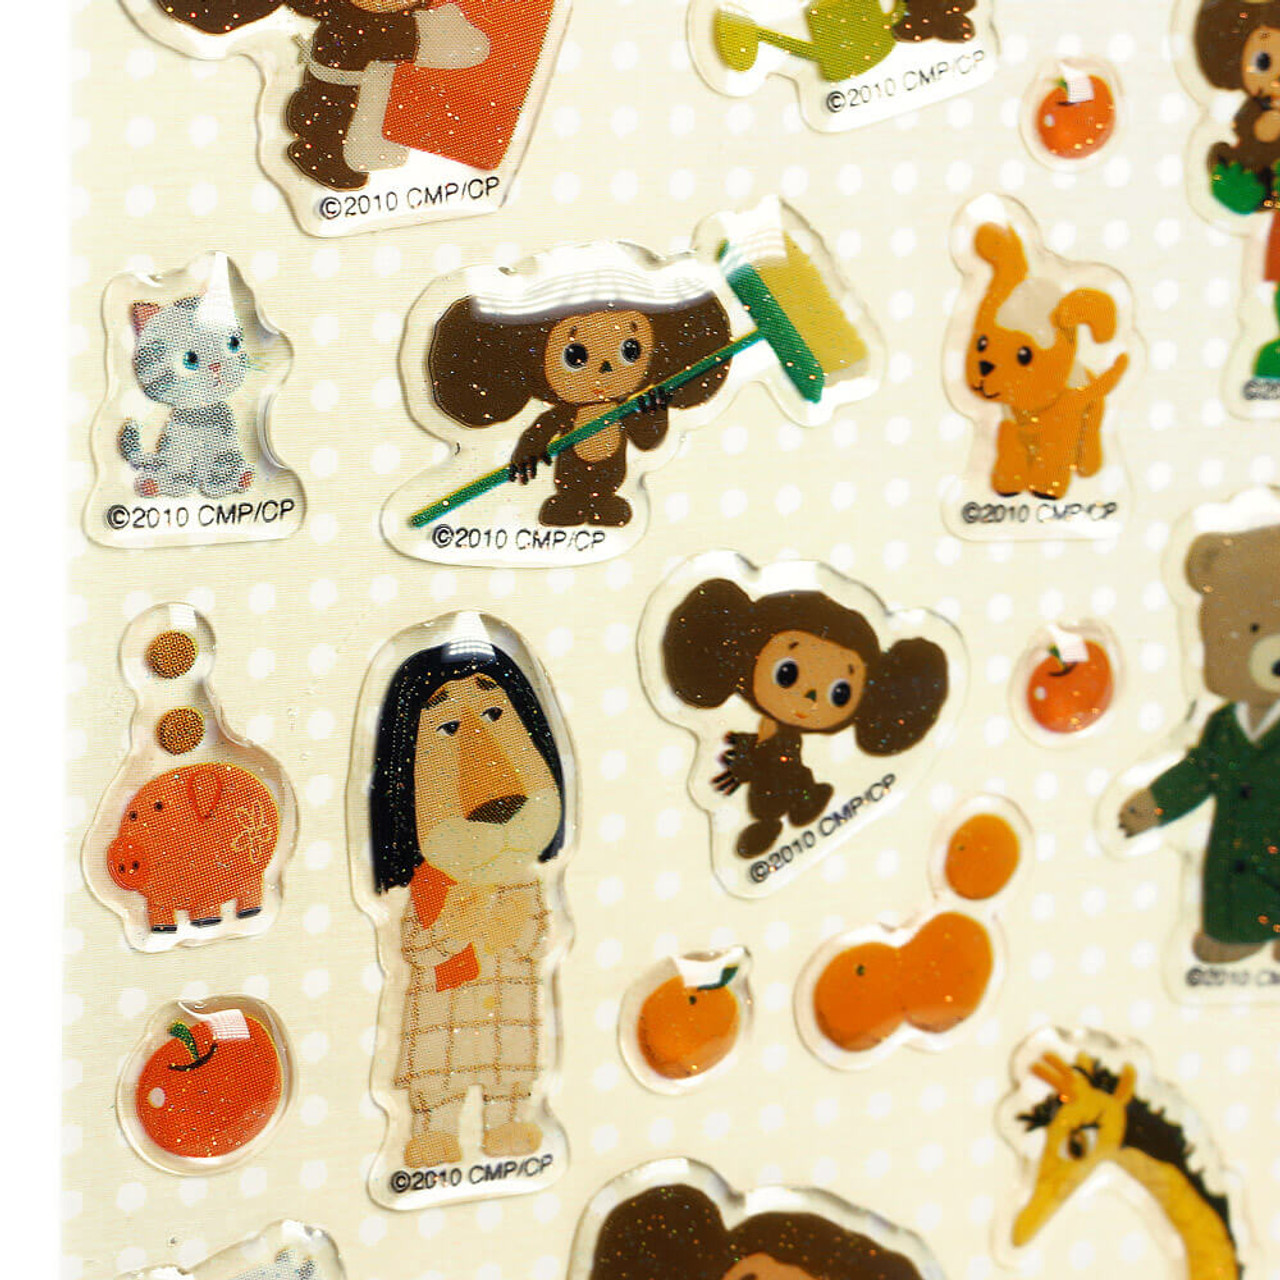 Cheburashka Yeoypawka 3D Puffy Sticker CHST03 - Zoo ( Close-up )